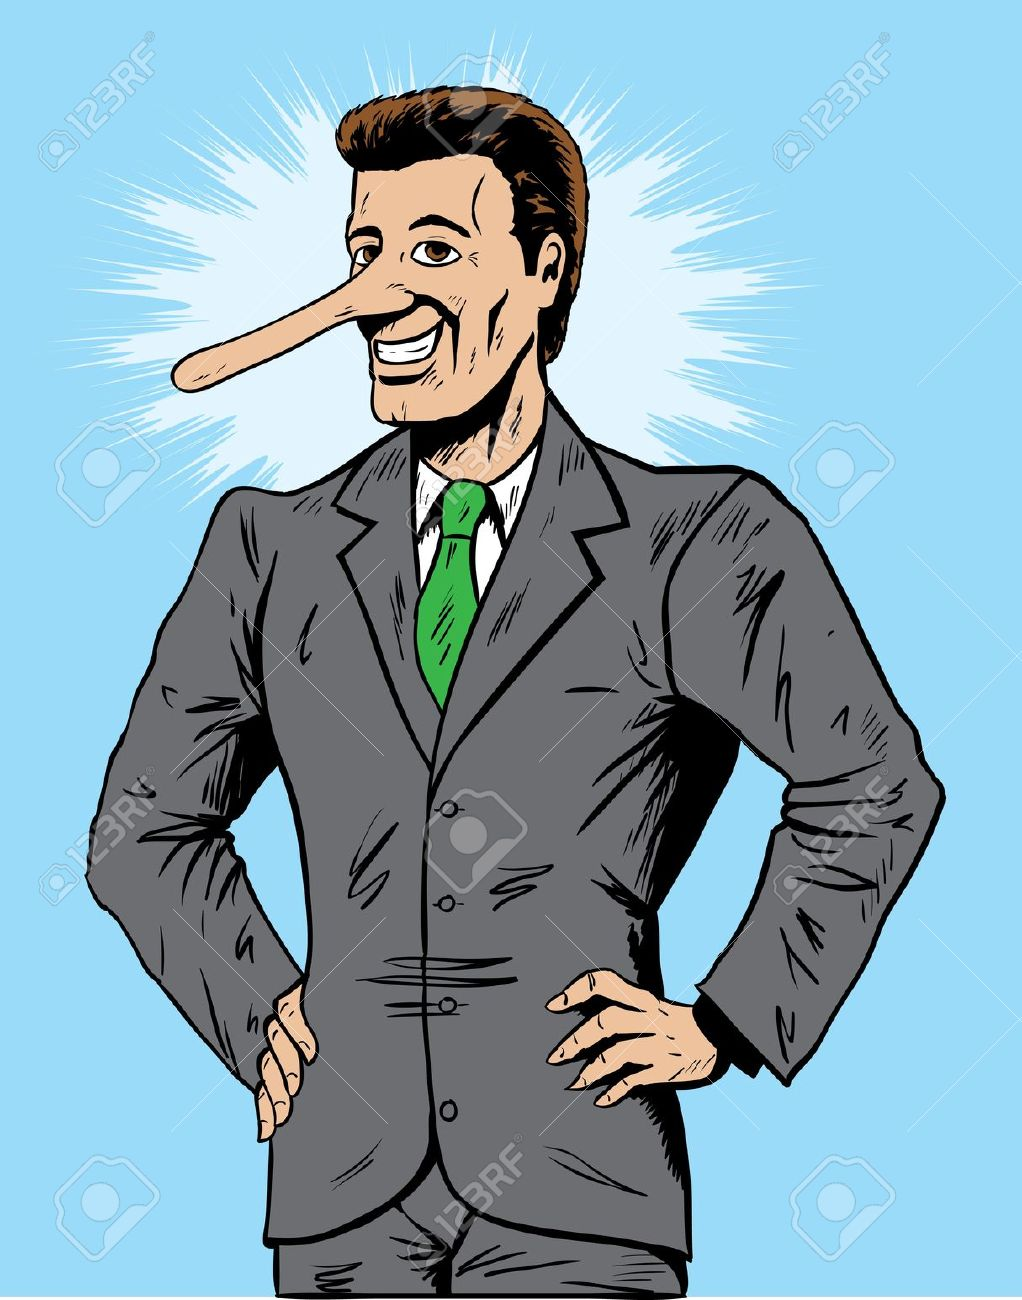 13664142-Lying-salesman-or-businessman-Stock-Vector-pinocchio-scam-con